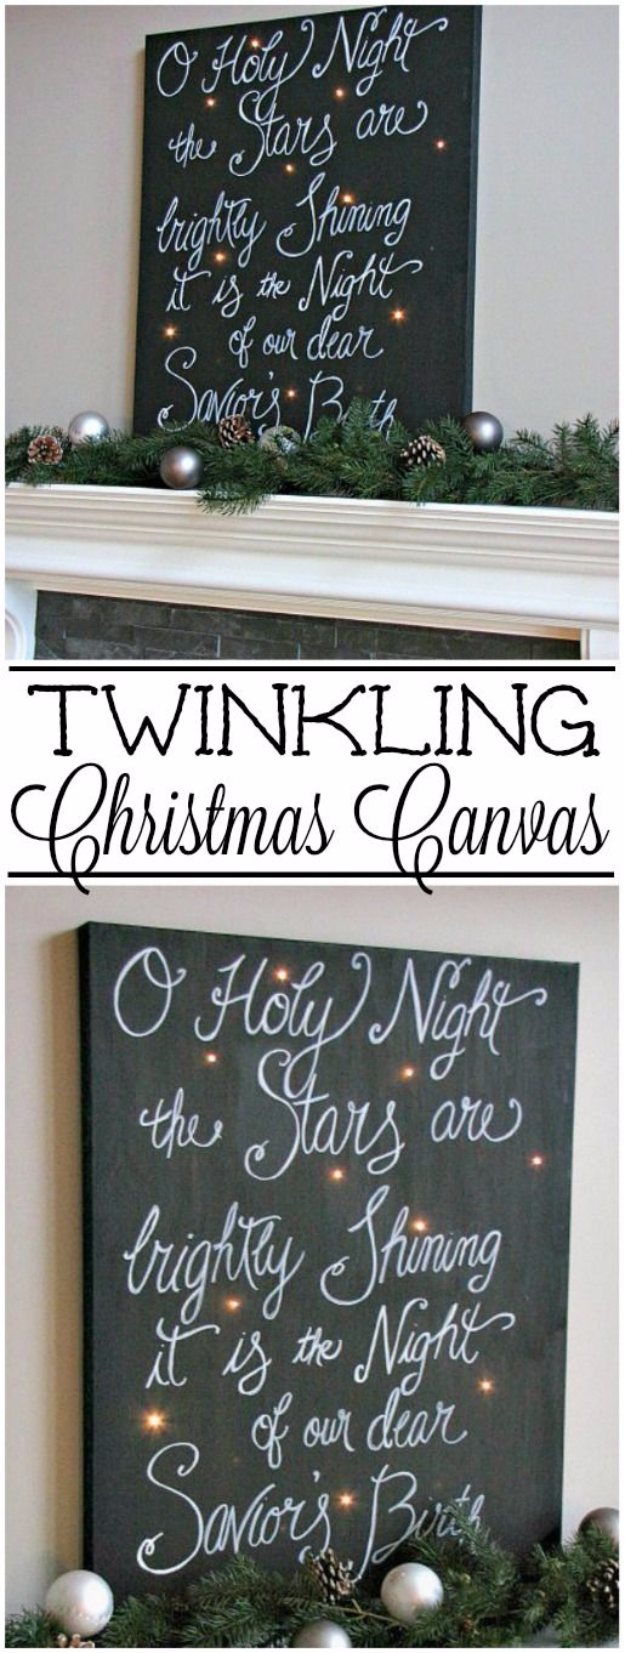 Cool Ways To Use Christmas Lights - Twinkling Christmas Canvas Art - Best Easy DIY Ideas for String Lights for Room Decoration, Home Decor and Creative DIY Bedroom Lighting #diy #christmas #homedecor